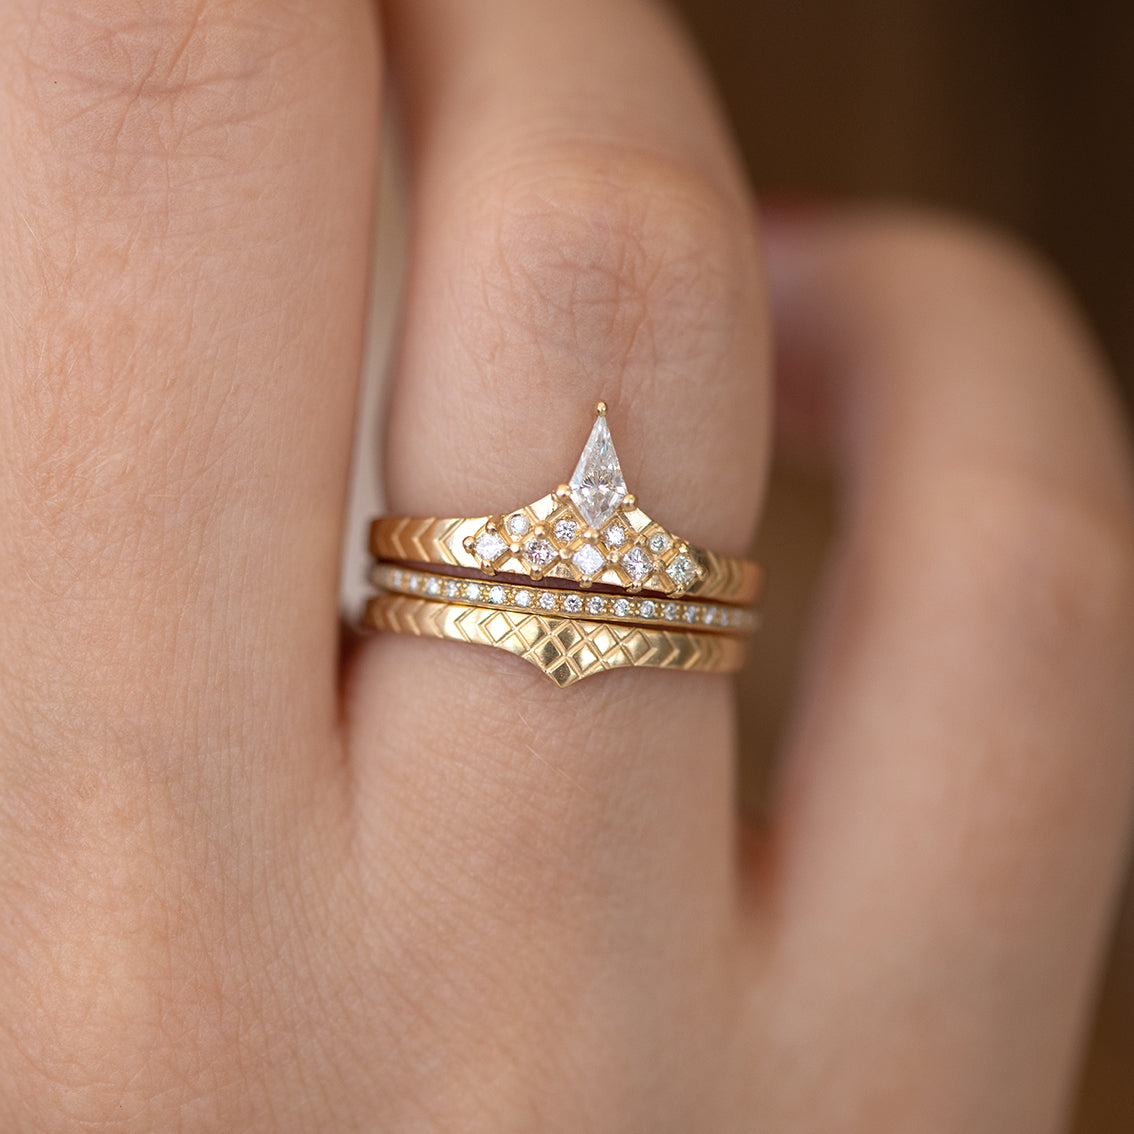 Geometric band with diamond peak on hand